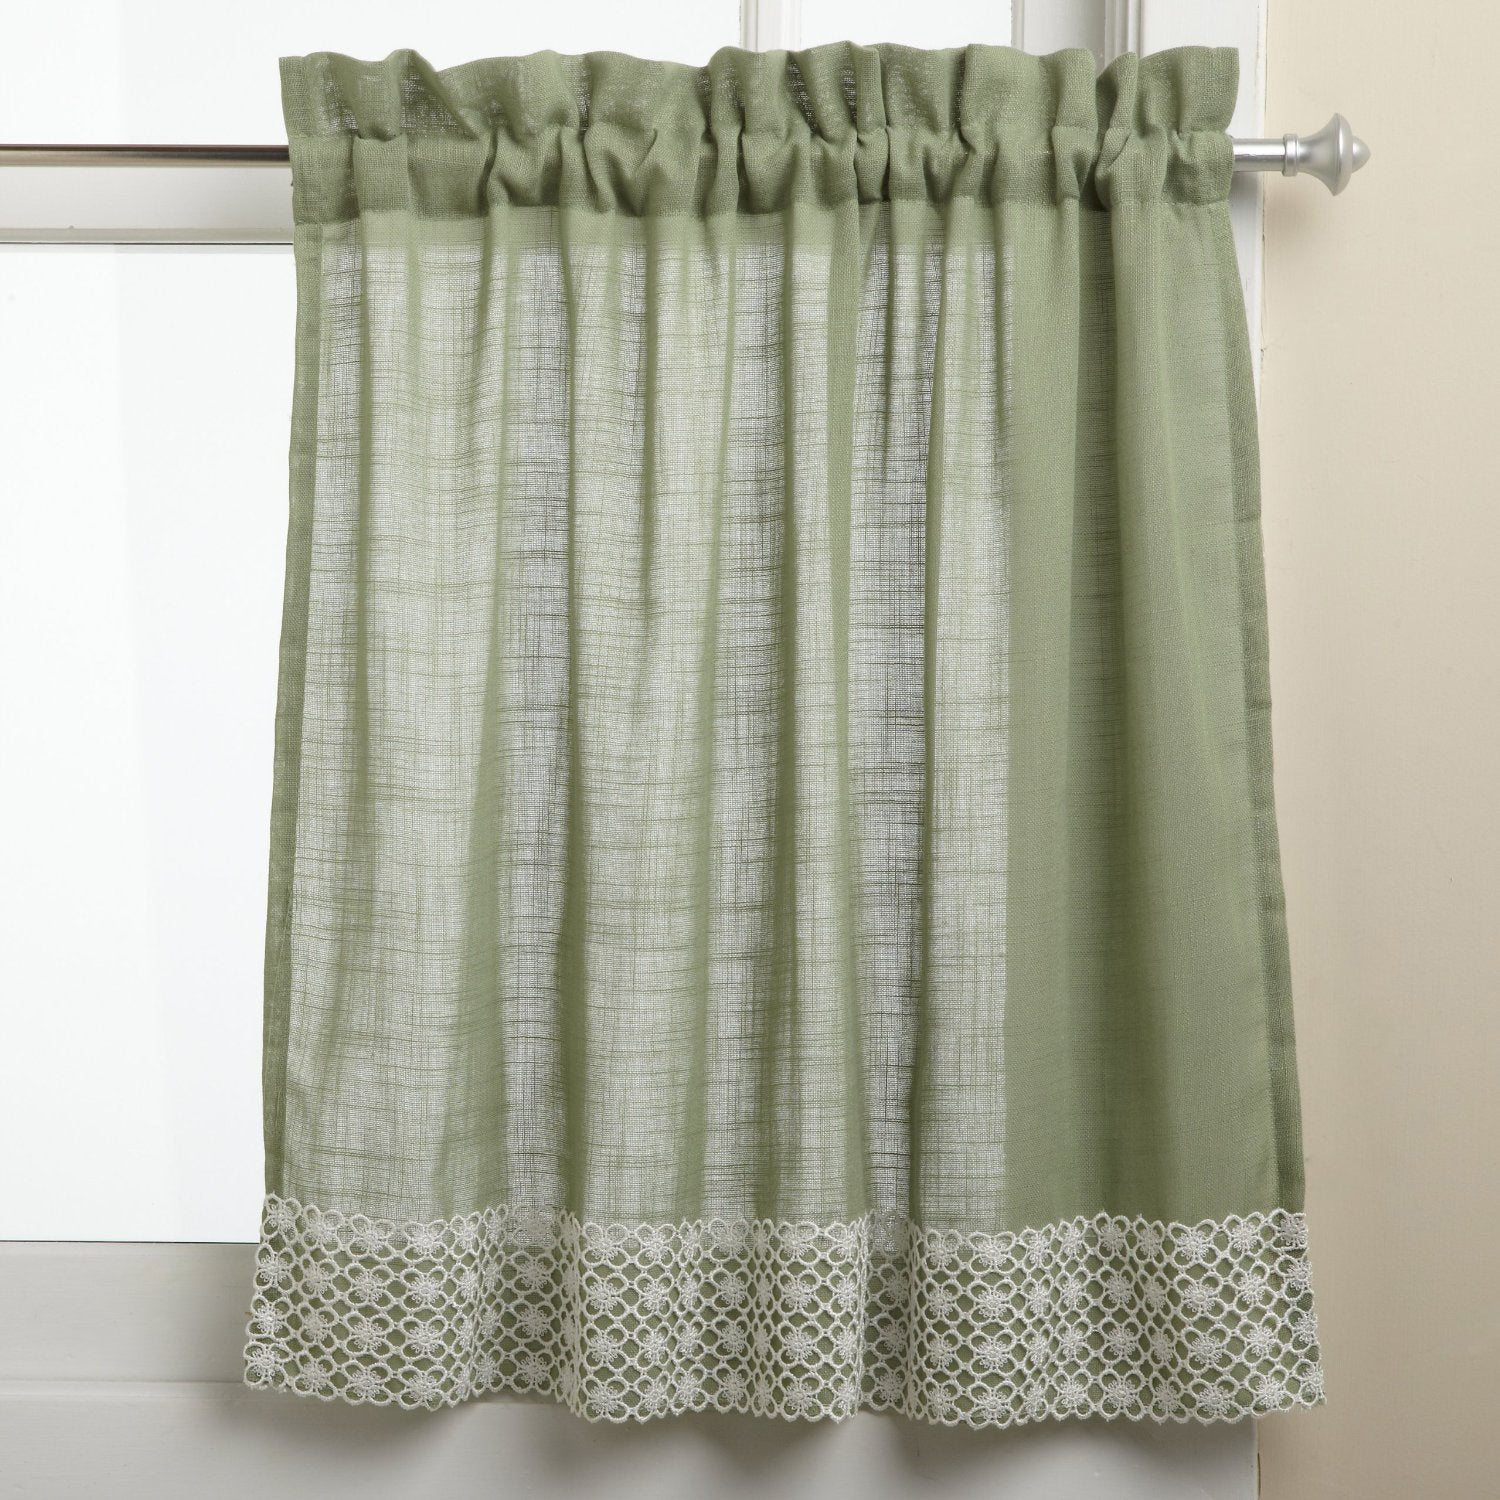 Sage Country Style Curtain Parts With White Daisy Lace Accent (separates Tiers, Swags And Valances) Inside French Vanilla Country Style Curtain Parts With White Daisy Lace Accent (View 5 of 20)